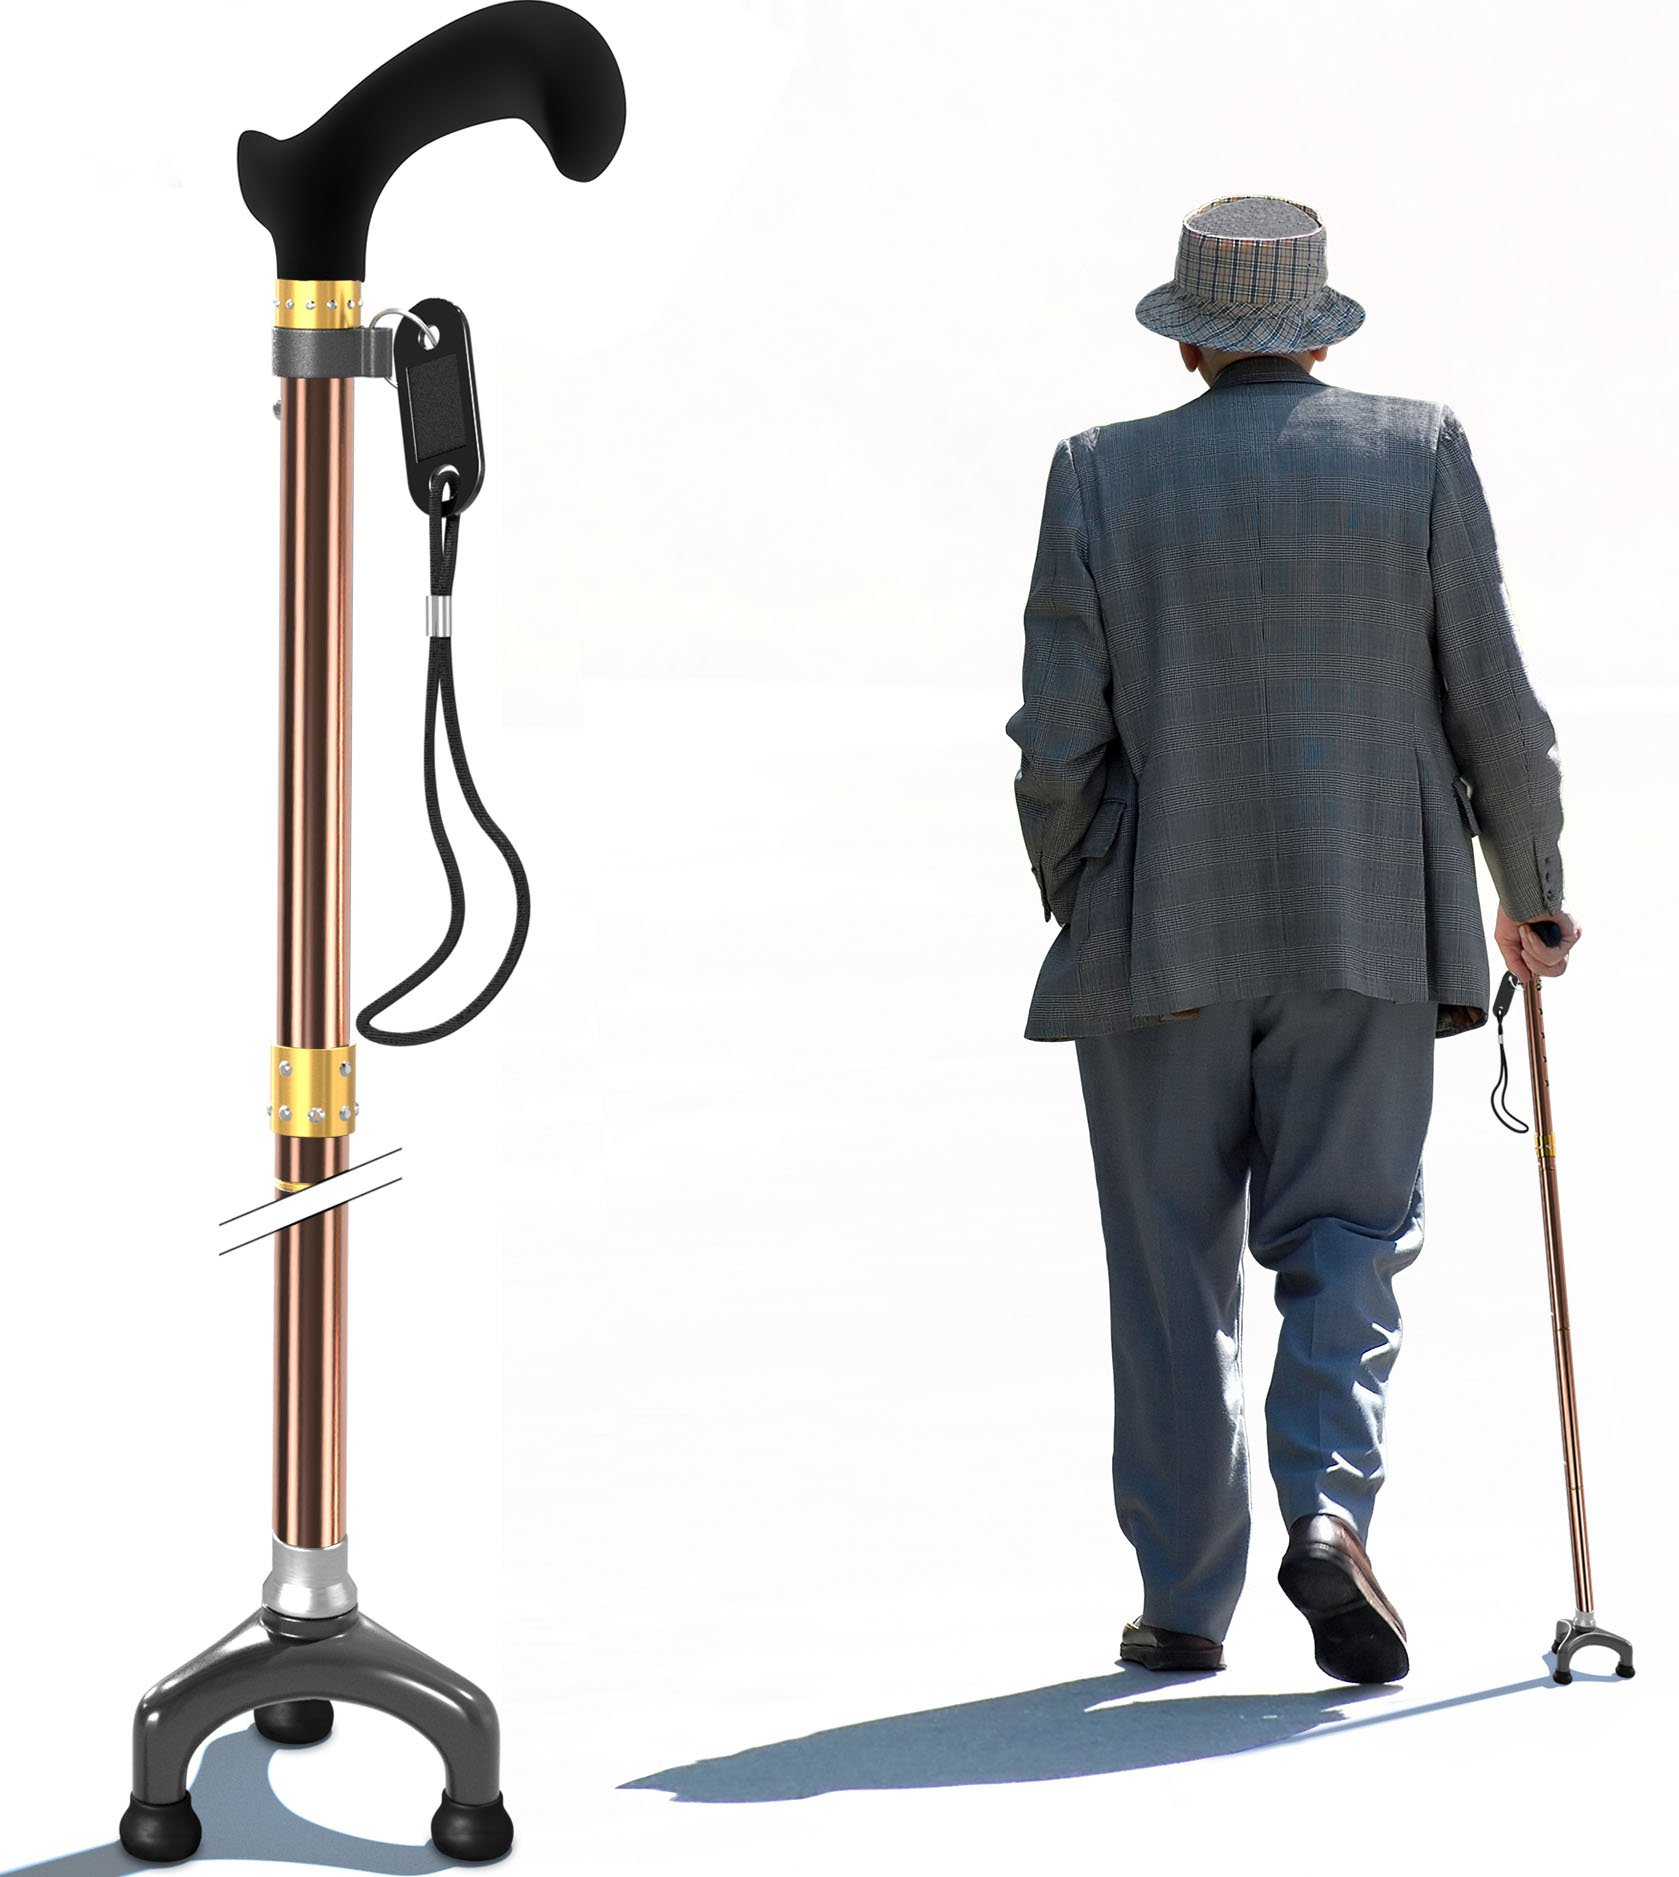 Bago Walking Cane for Men & Women - Folding Stick with Ergonomic Handle and Pivot Tripod Tips - Travel with These Adjustable Canes and Walking Sticks - Pack Small, LightweightCollapsible (Champ)